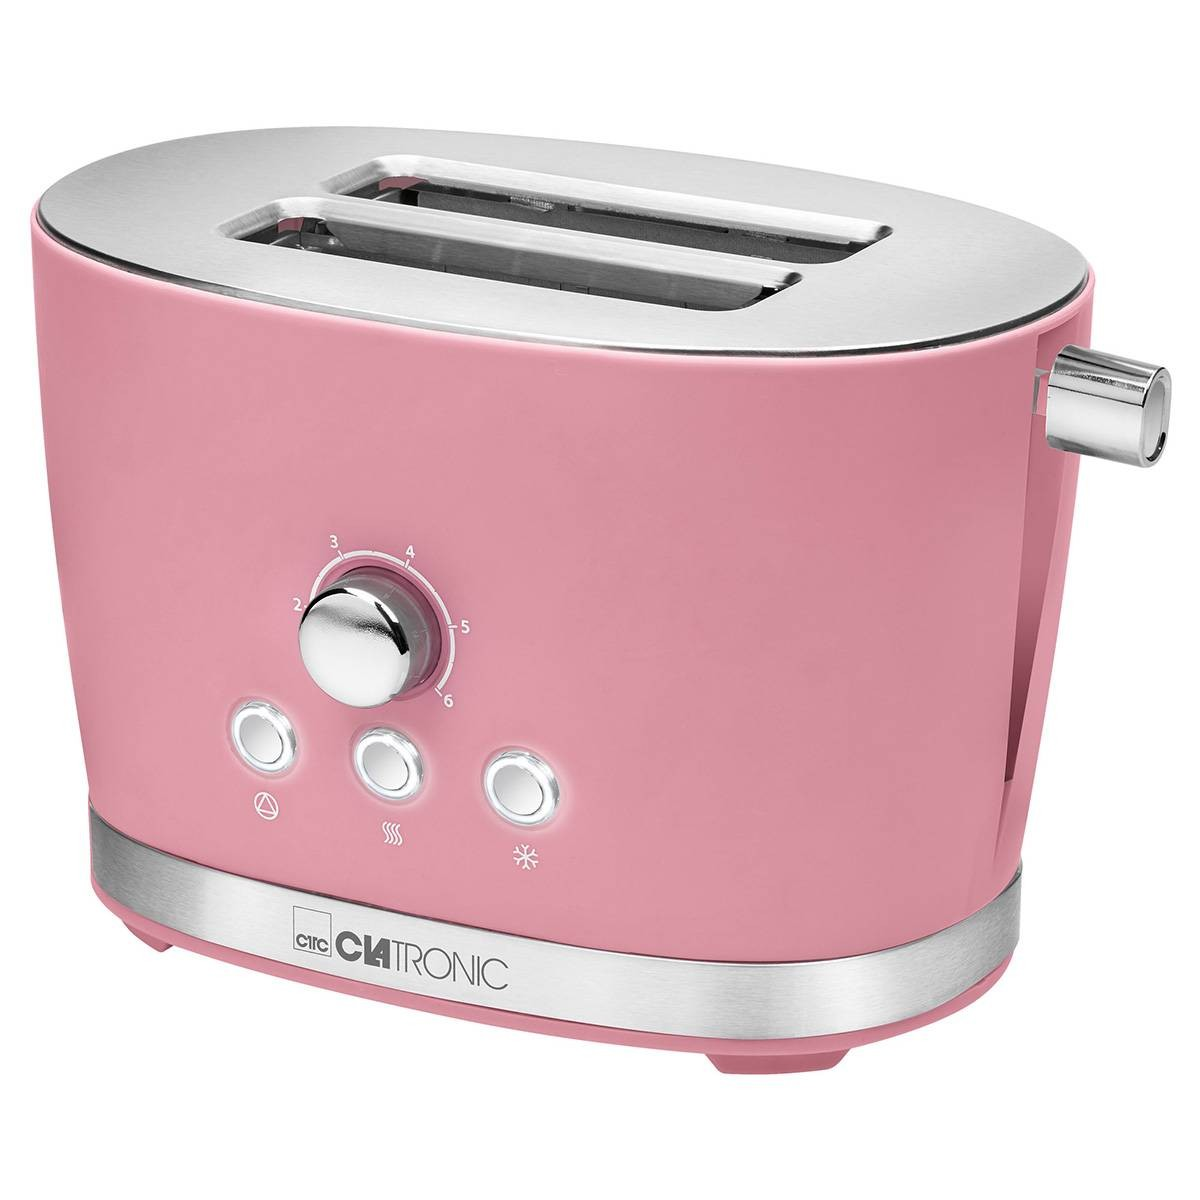 Clatronic TA 3690 Toaster Pan 2 Slots 3 Functional Toast Warm Thaw Roasting Level 850W Retro Vintage Rose